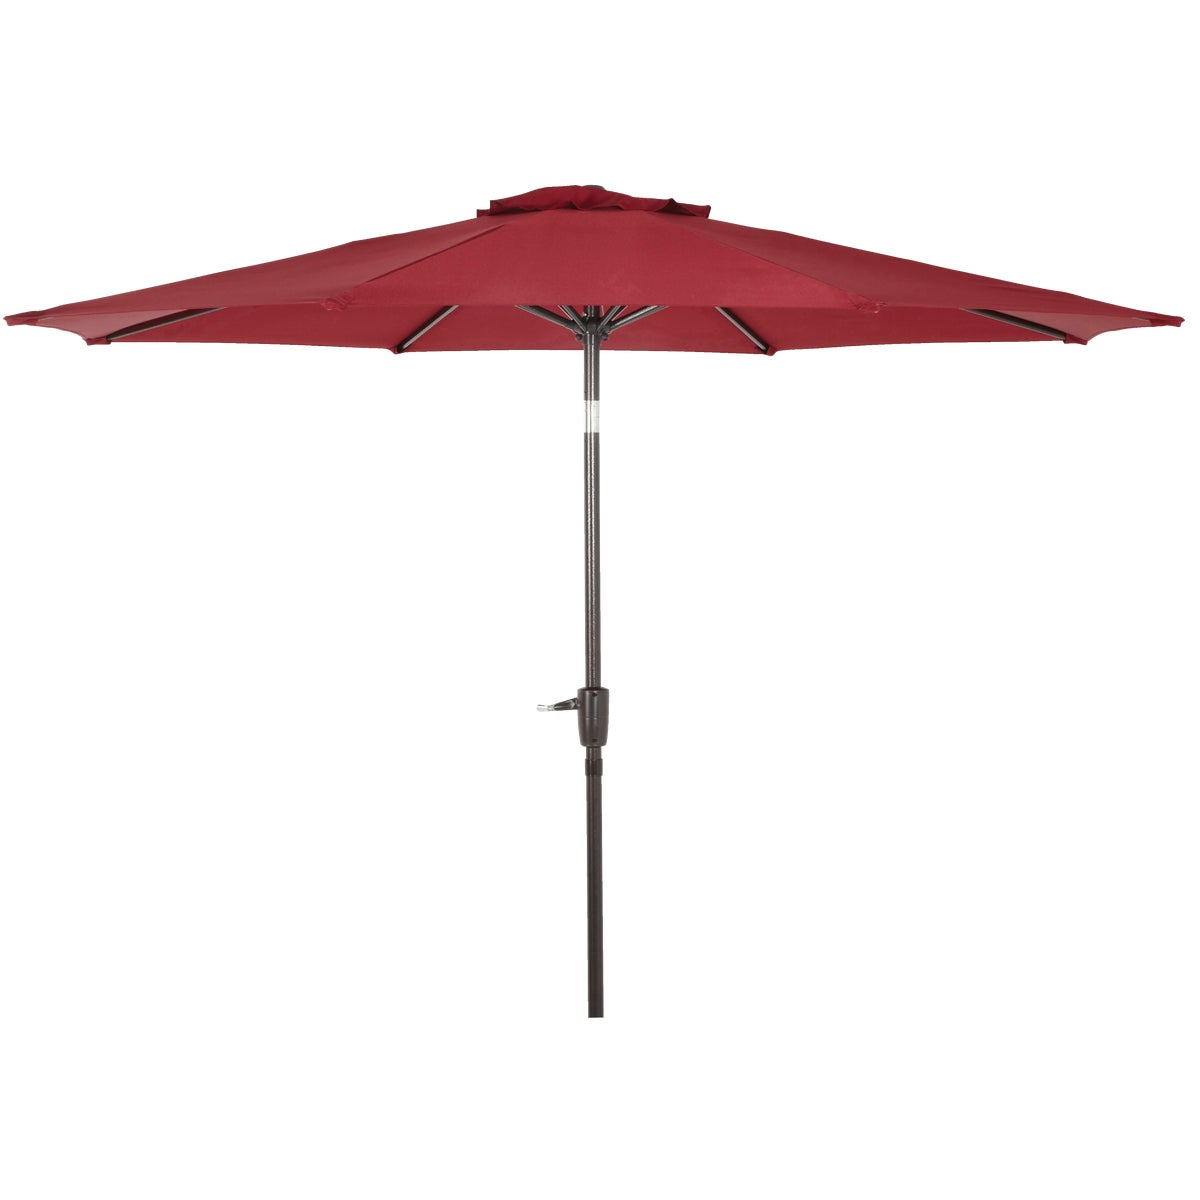 9' BURGNDY ALUM UMBRELLA